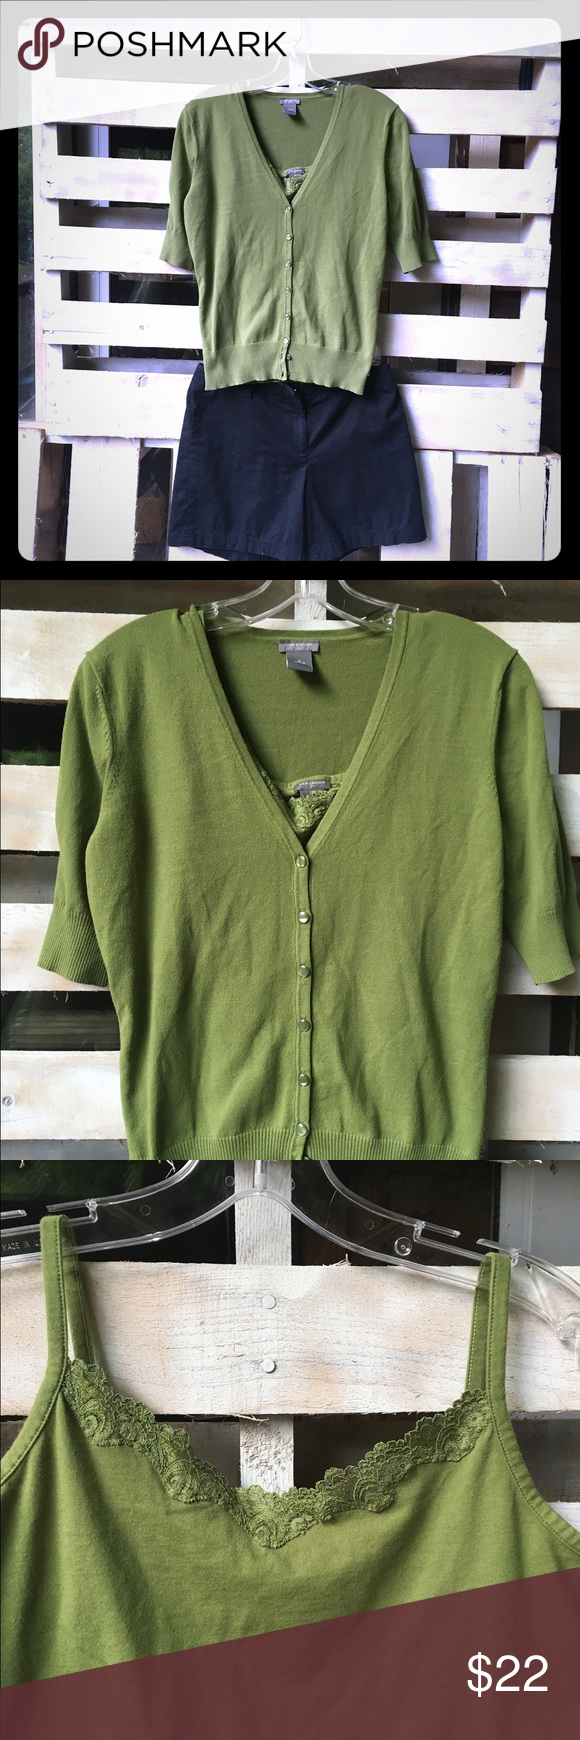 Short sleeve cardigan and matching lace top tank   Olive green ...